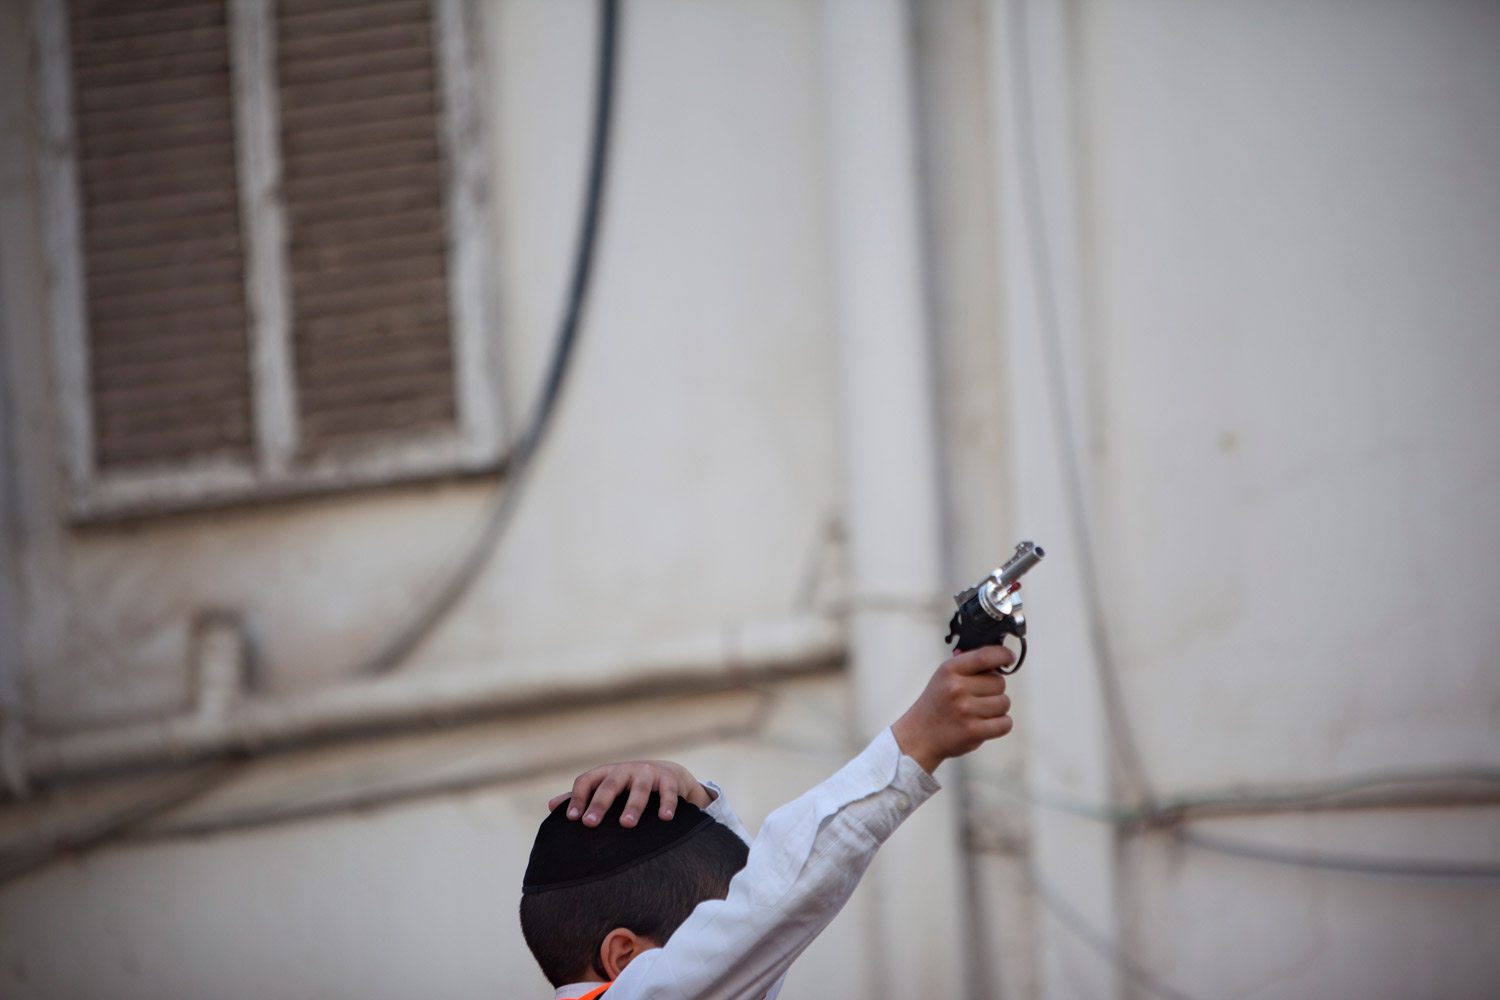 March 8, 2012. An ultra-Orthodox Jewish boy plays with a toy gun during a Purim festival in the ultra-Orthodox town of Bnei Brak near Tel Aviv.